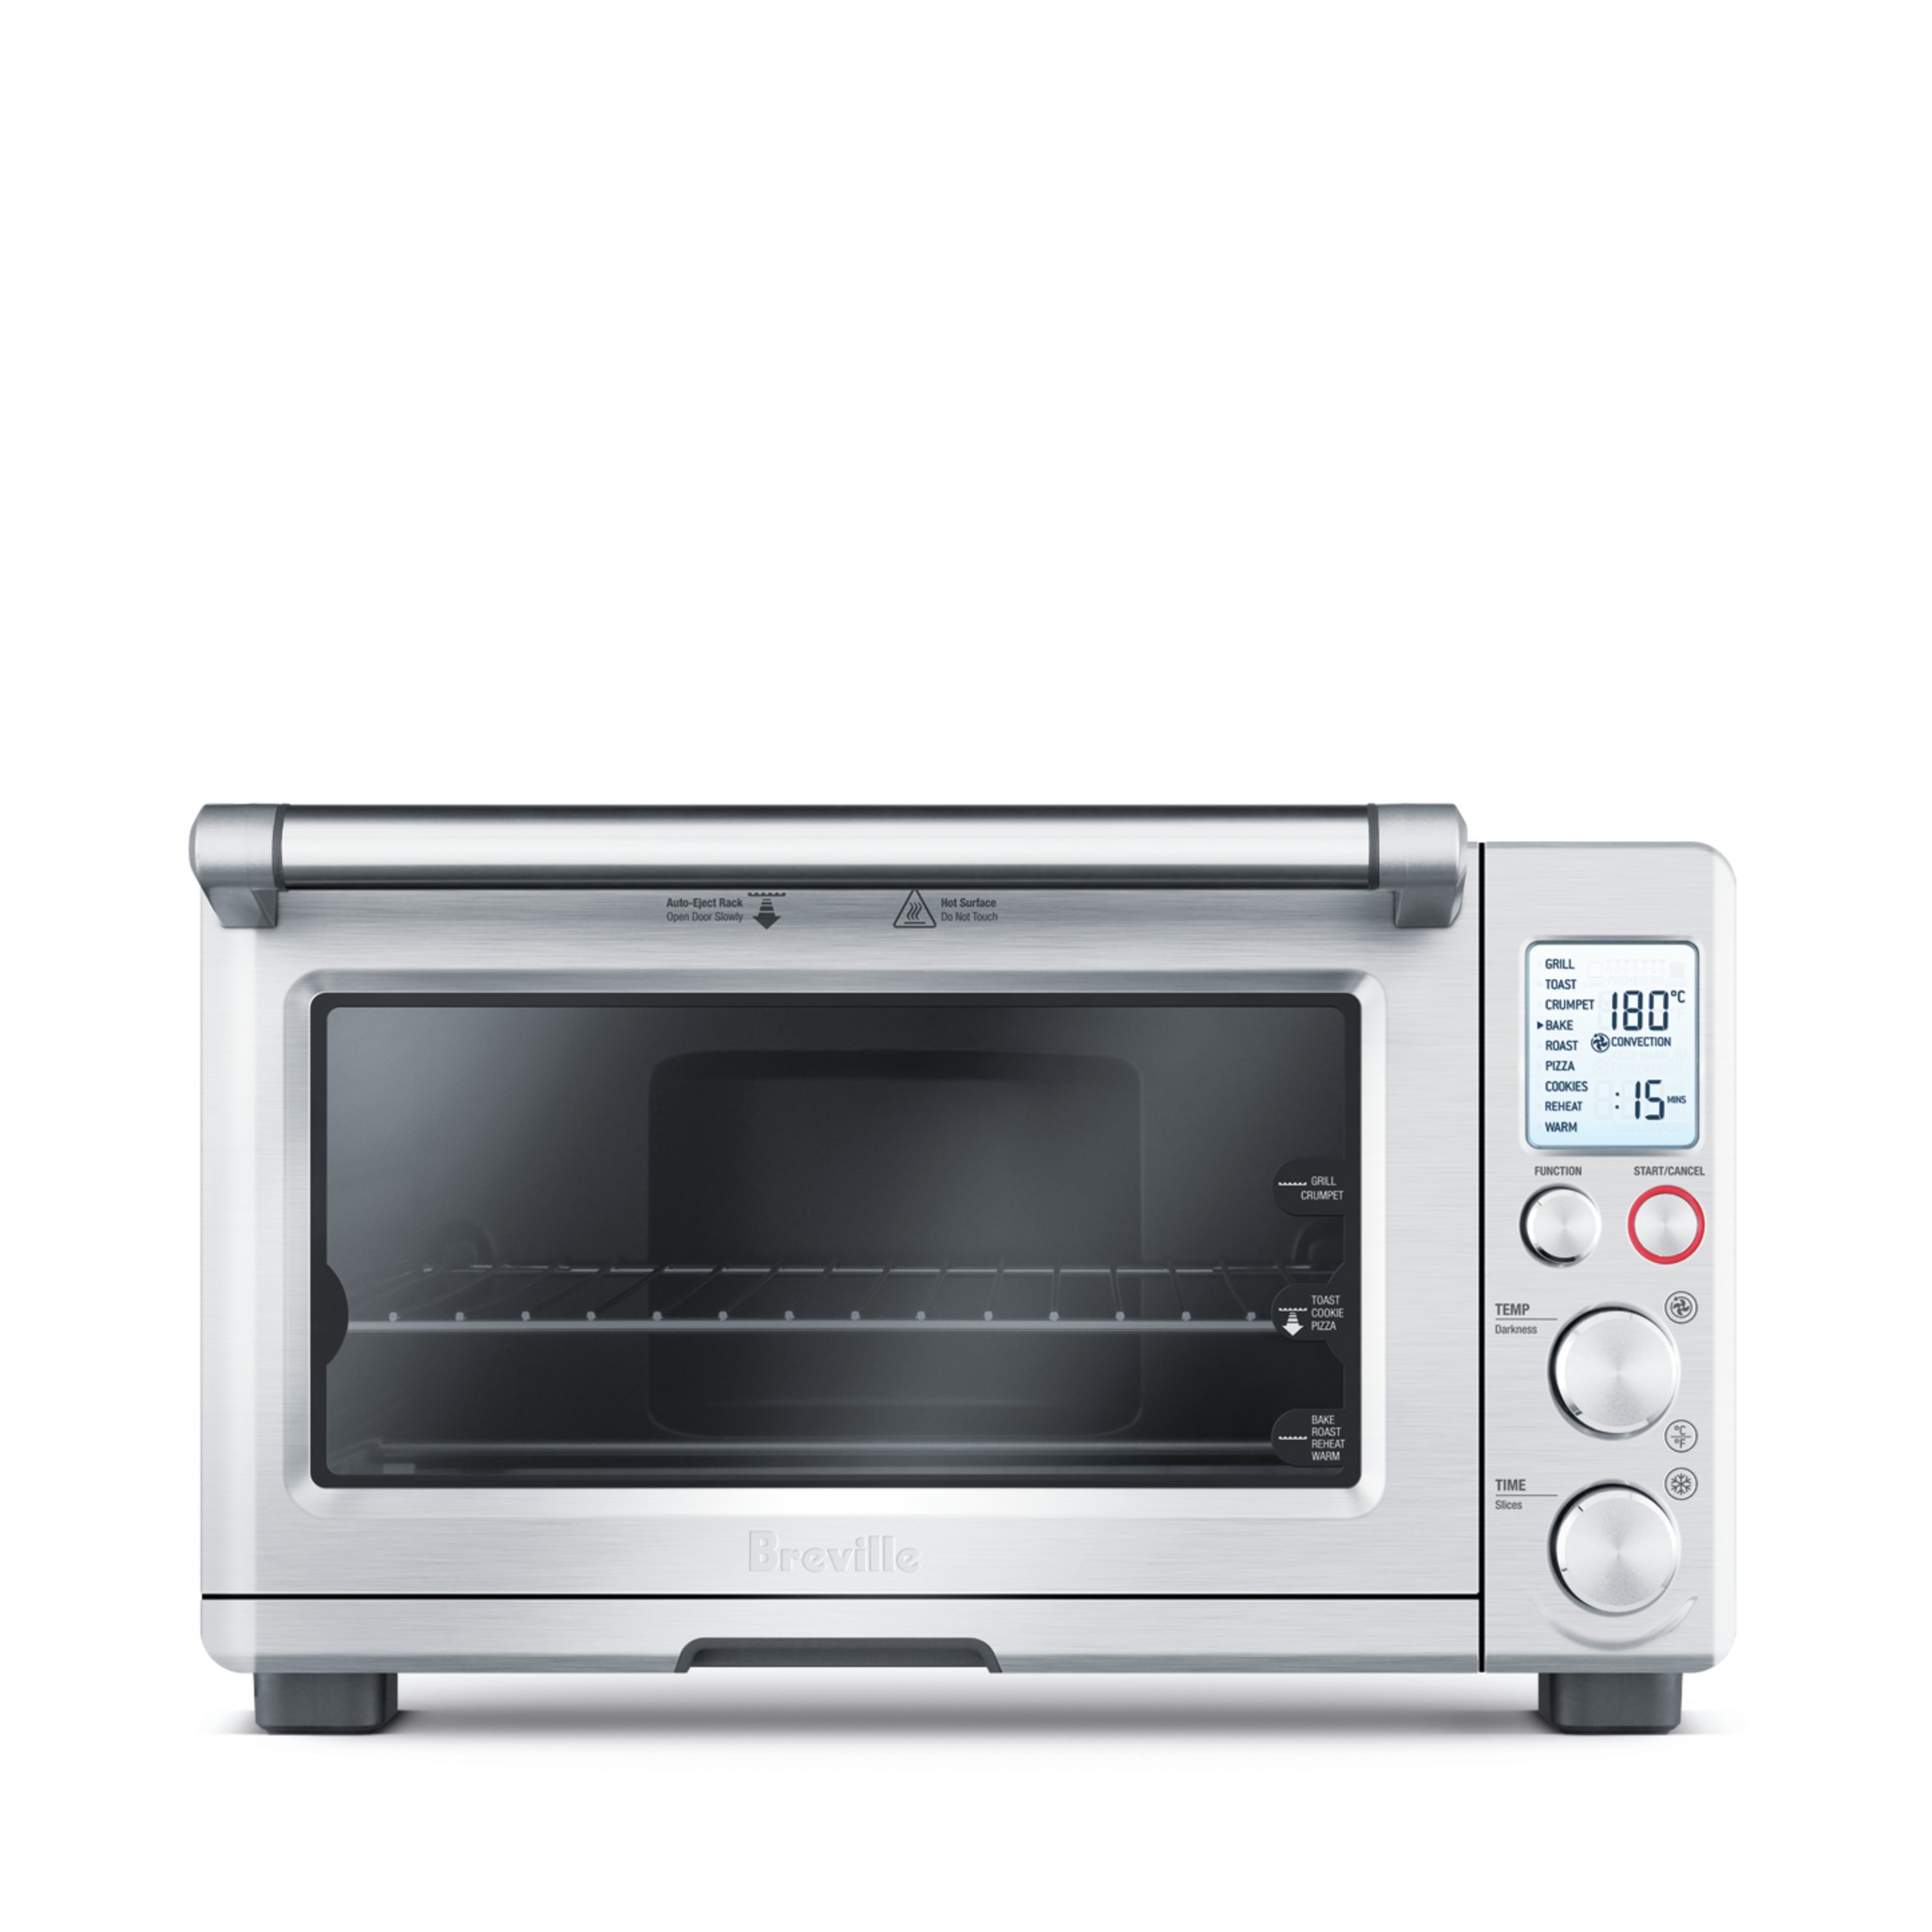 reports kitchen target toaster breville picture toasting awesome for and oven have bovxl an the files pro rotisserie best convection euro trend with experience consumer excellent